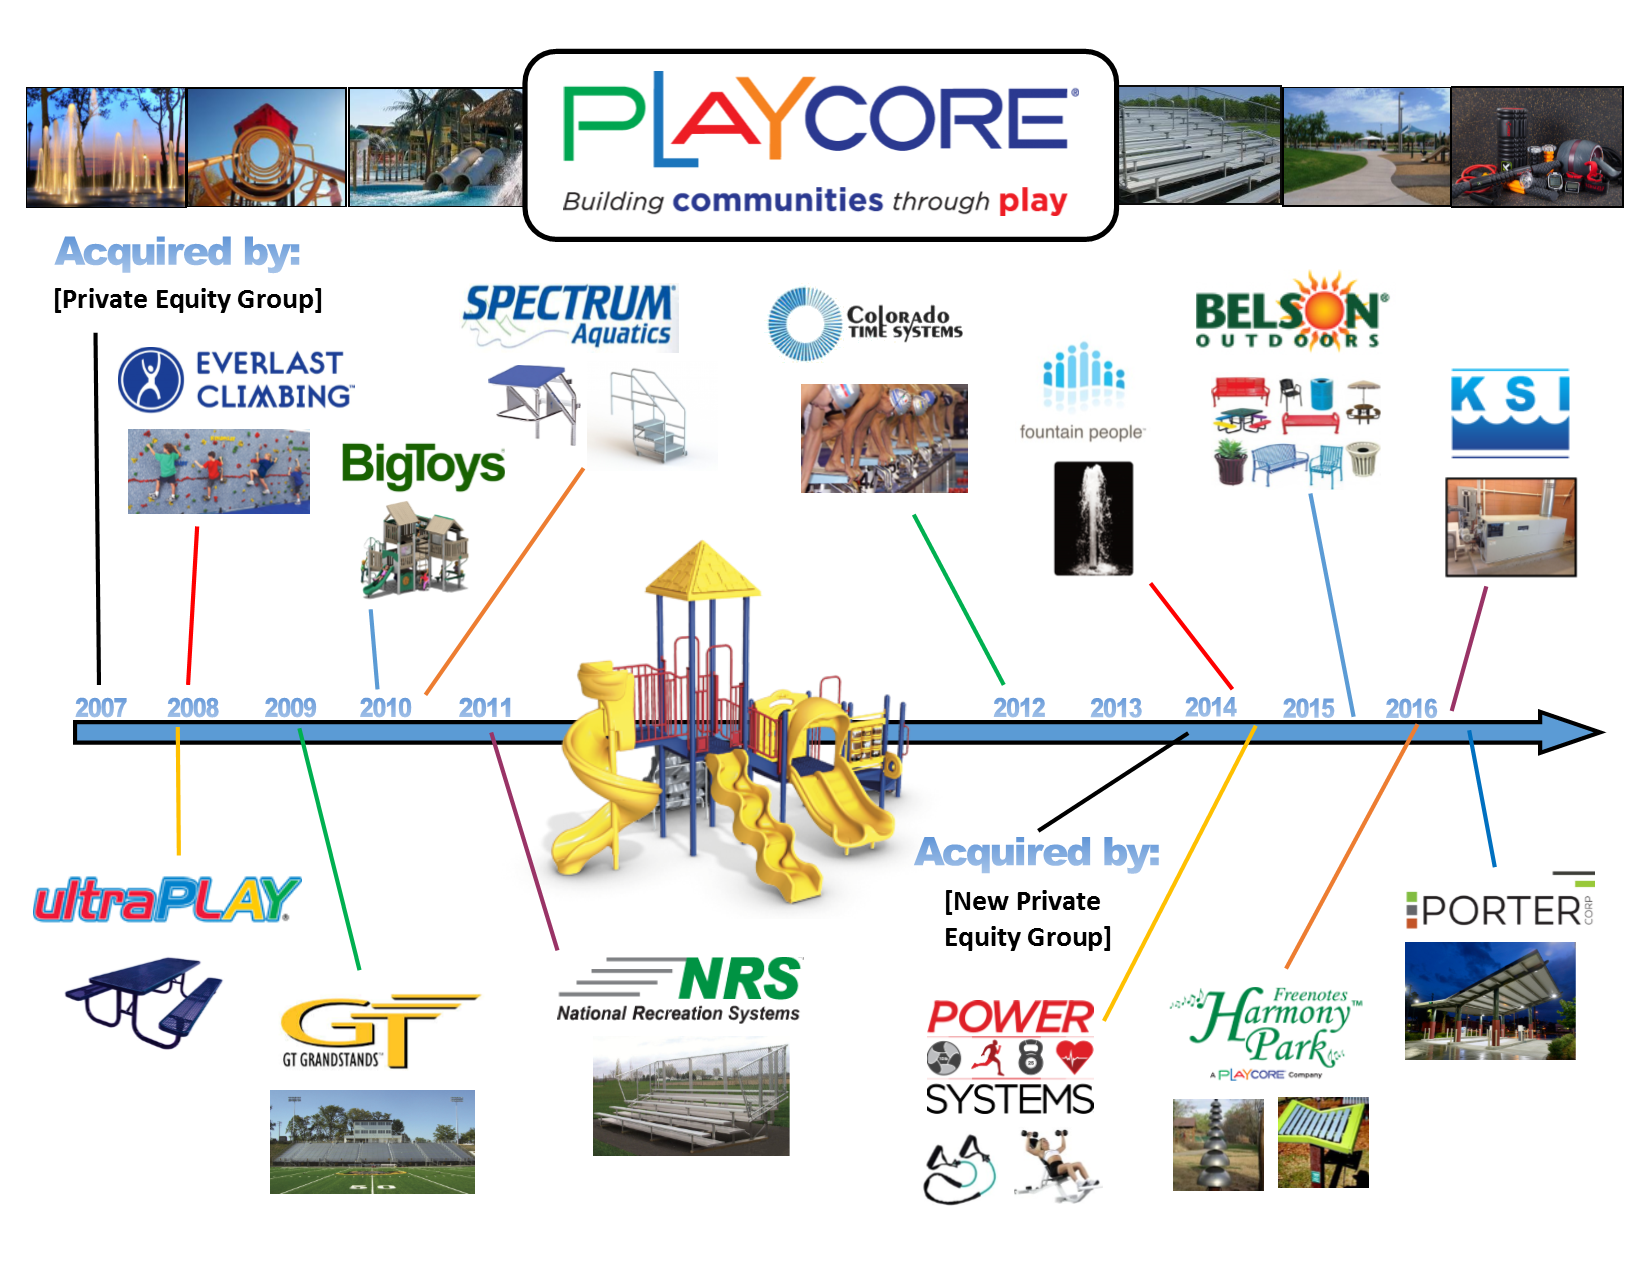 playcore-acquisition-timeline-12-2016